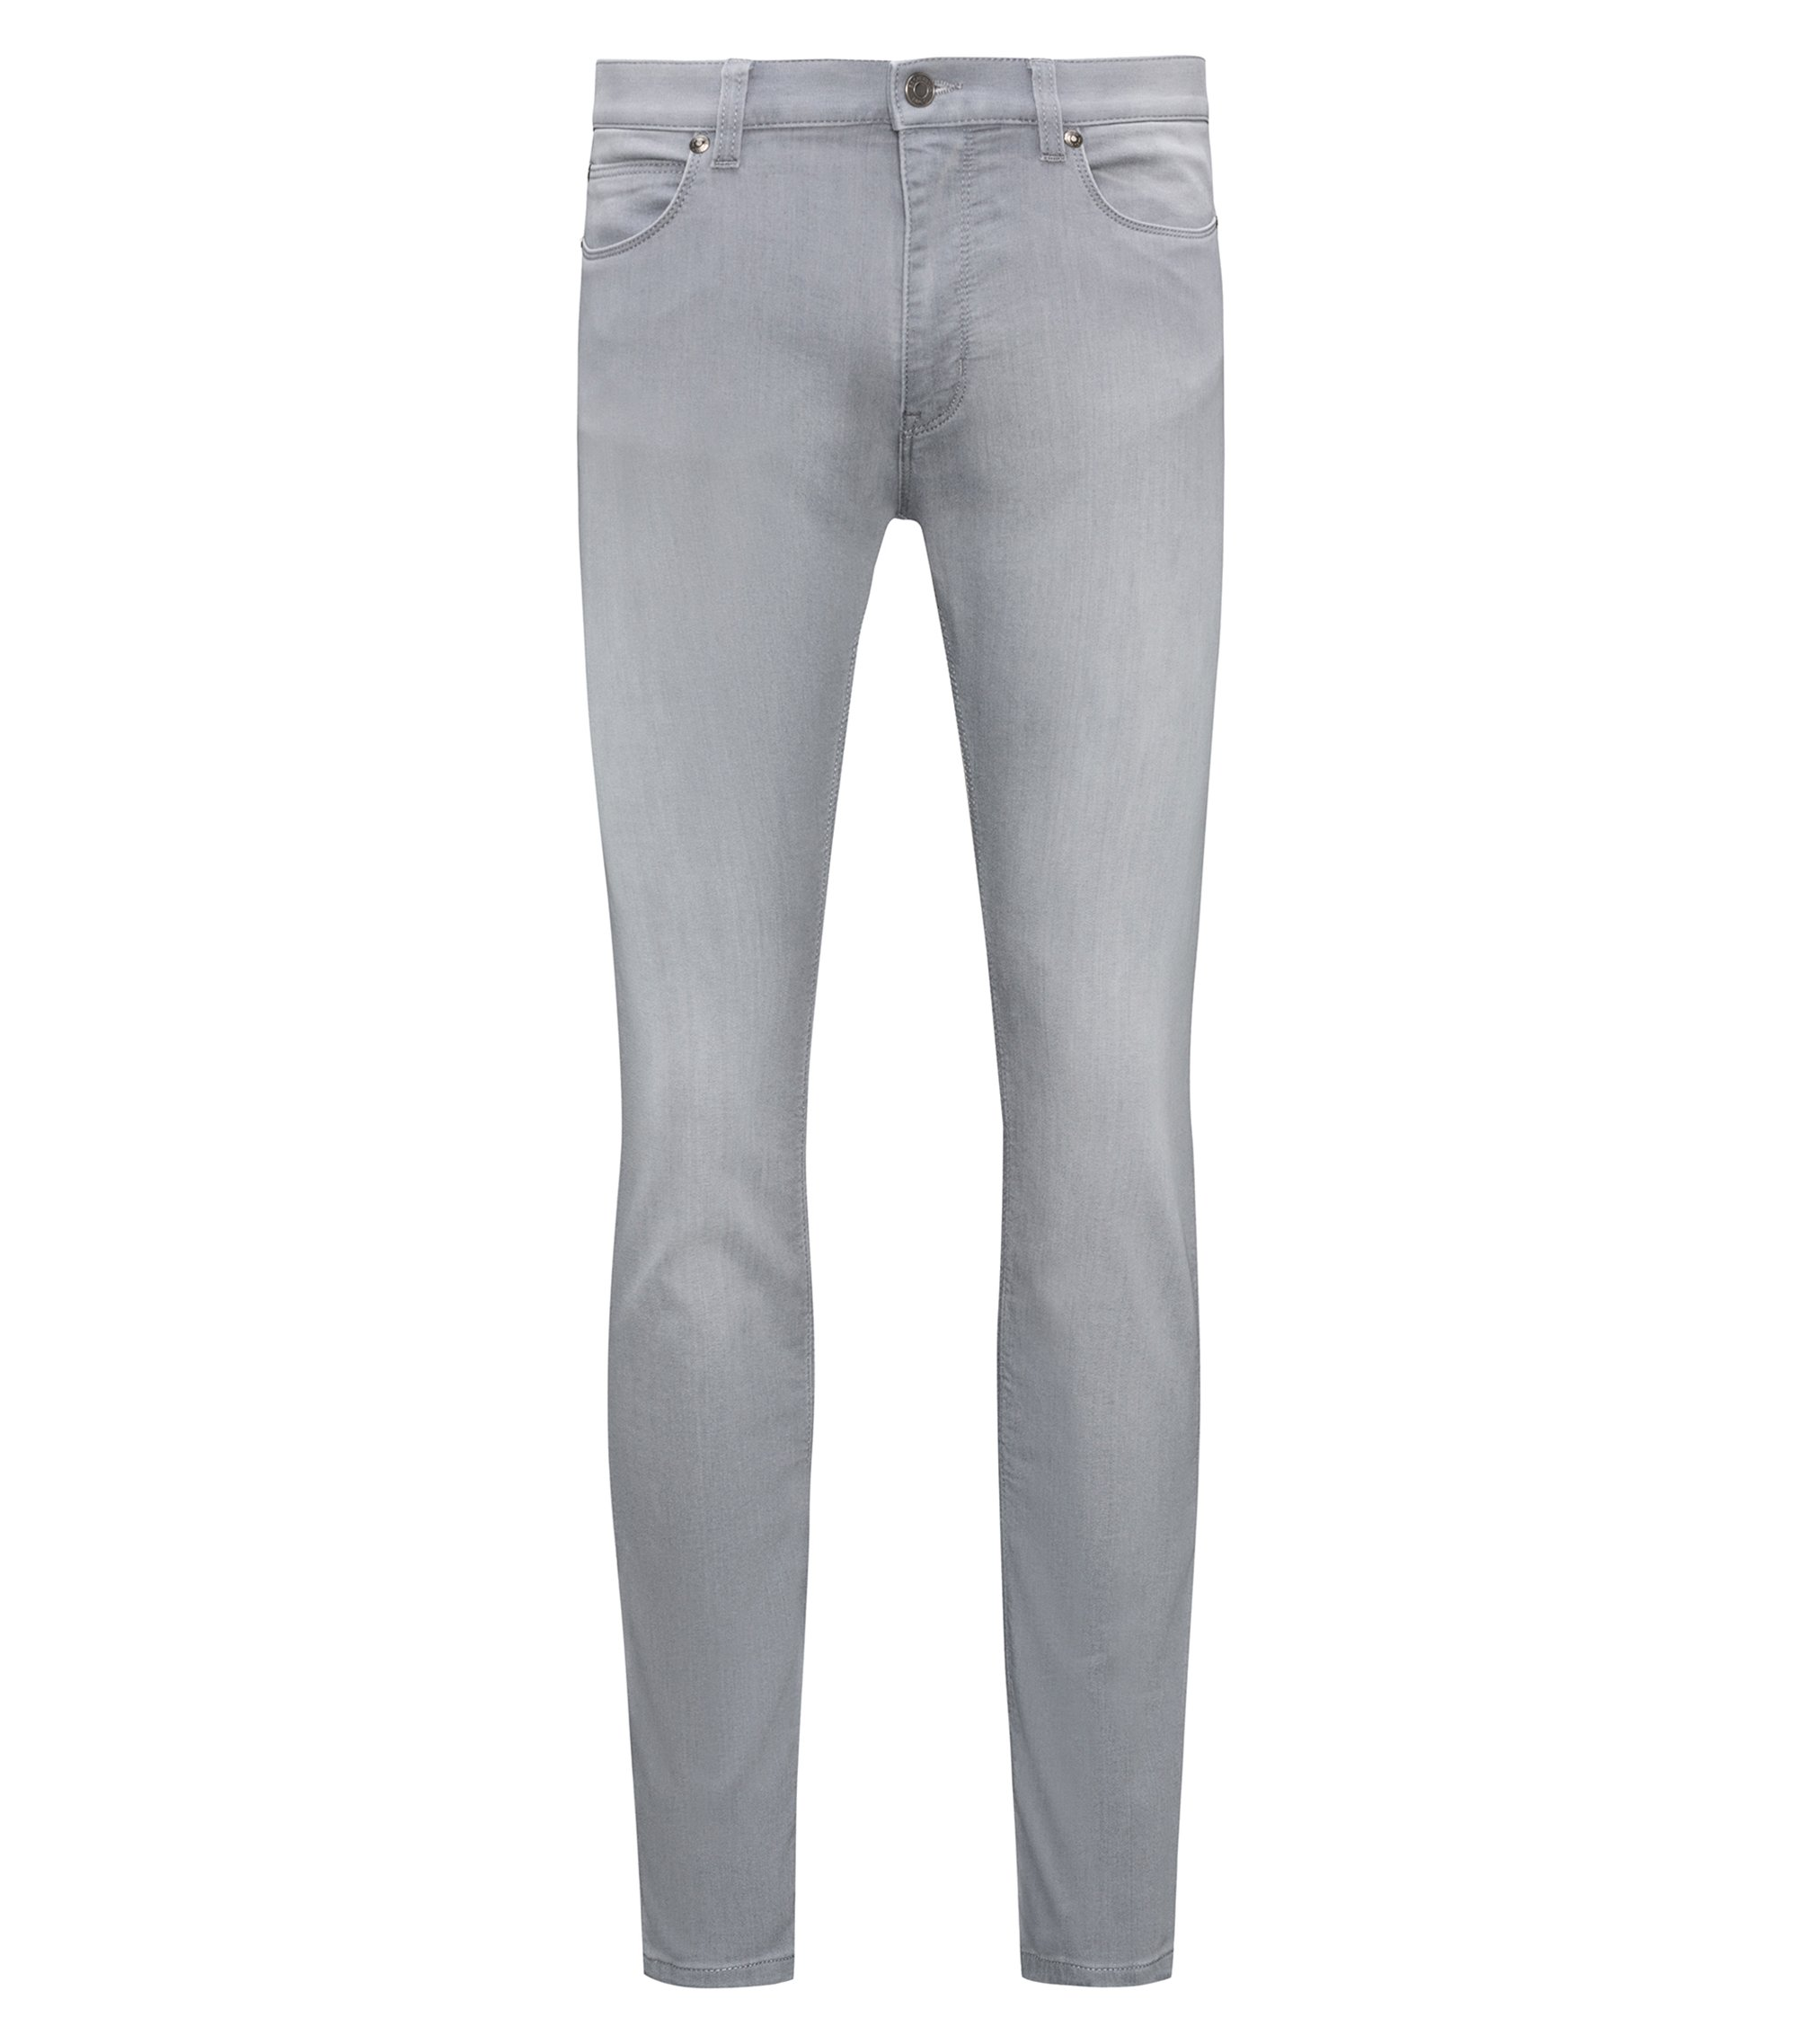 Jean taille basse stretch Skinny Fit, Argent